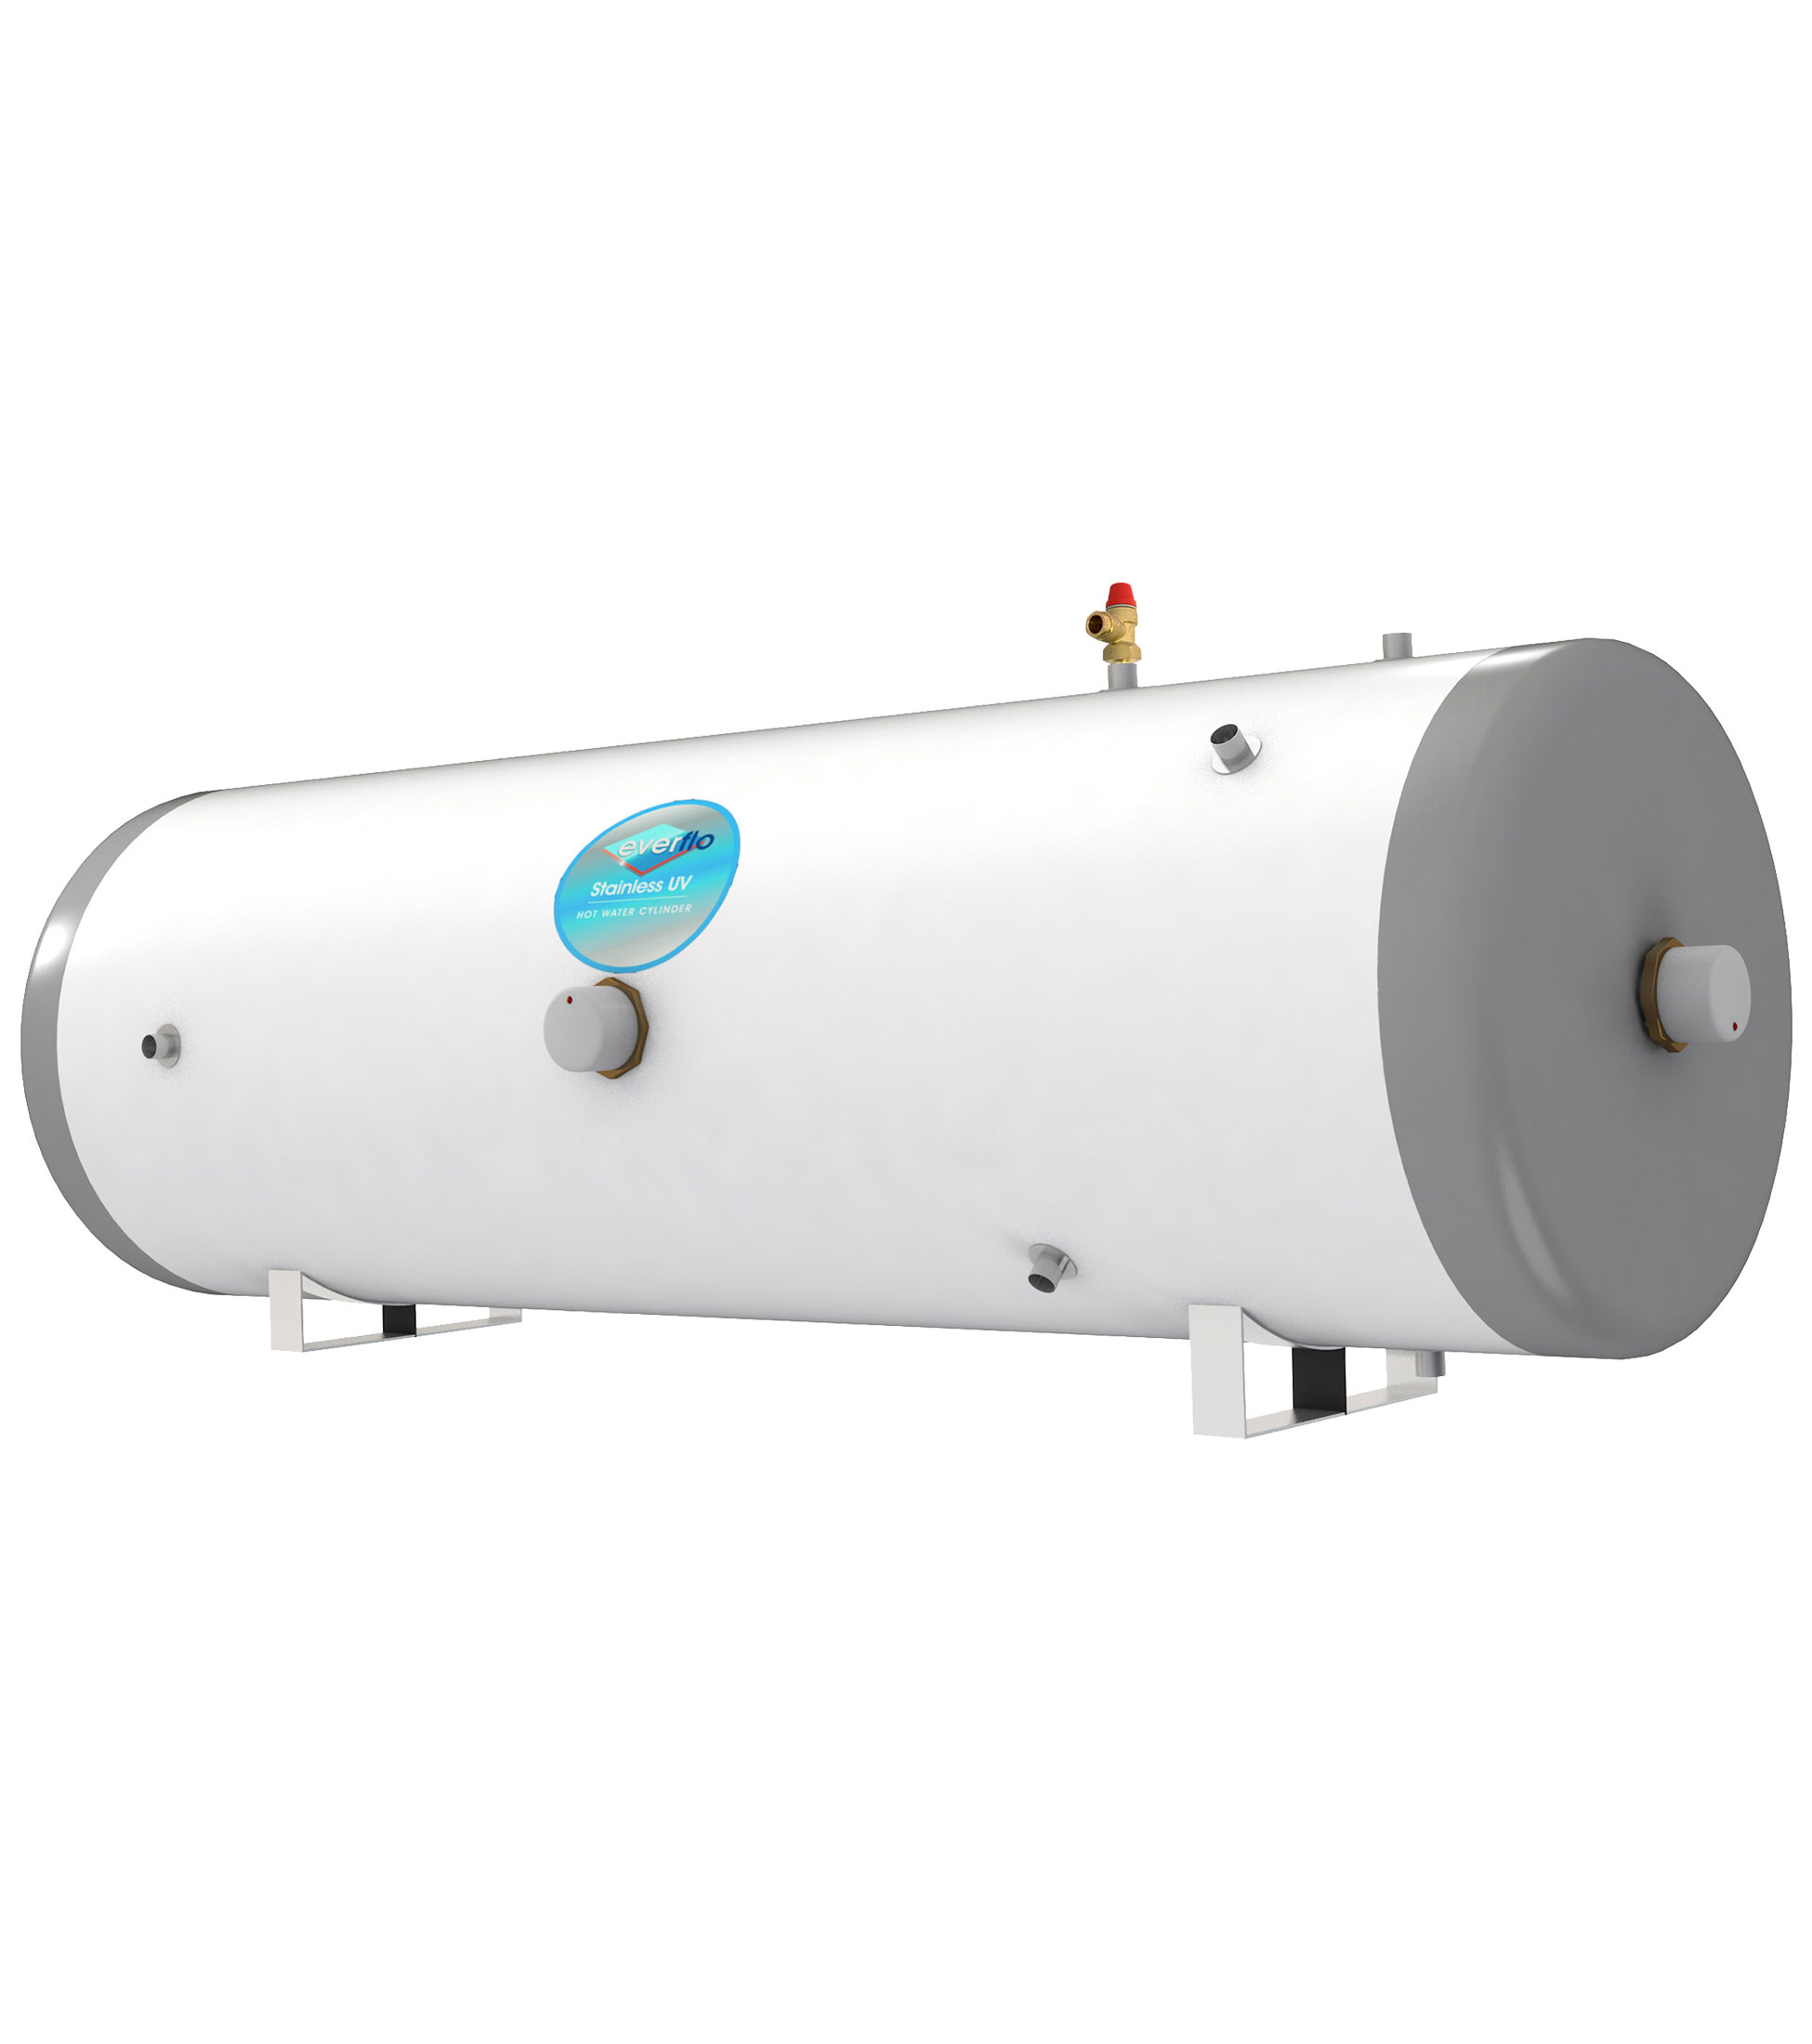 Everflo - Stainless 180L Horizontal Indirect Unvented Hot Water ...